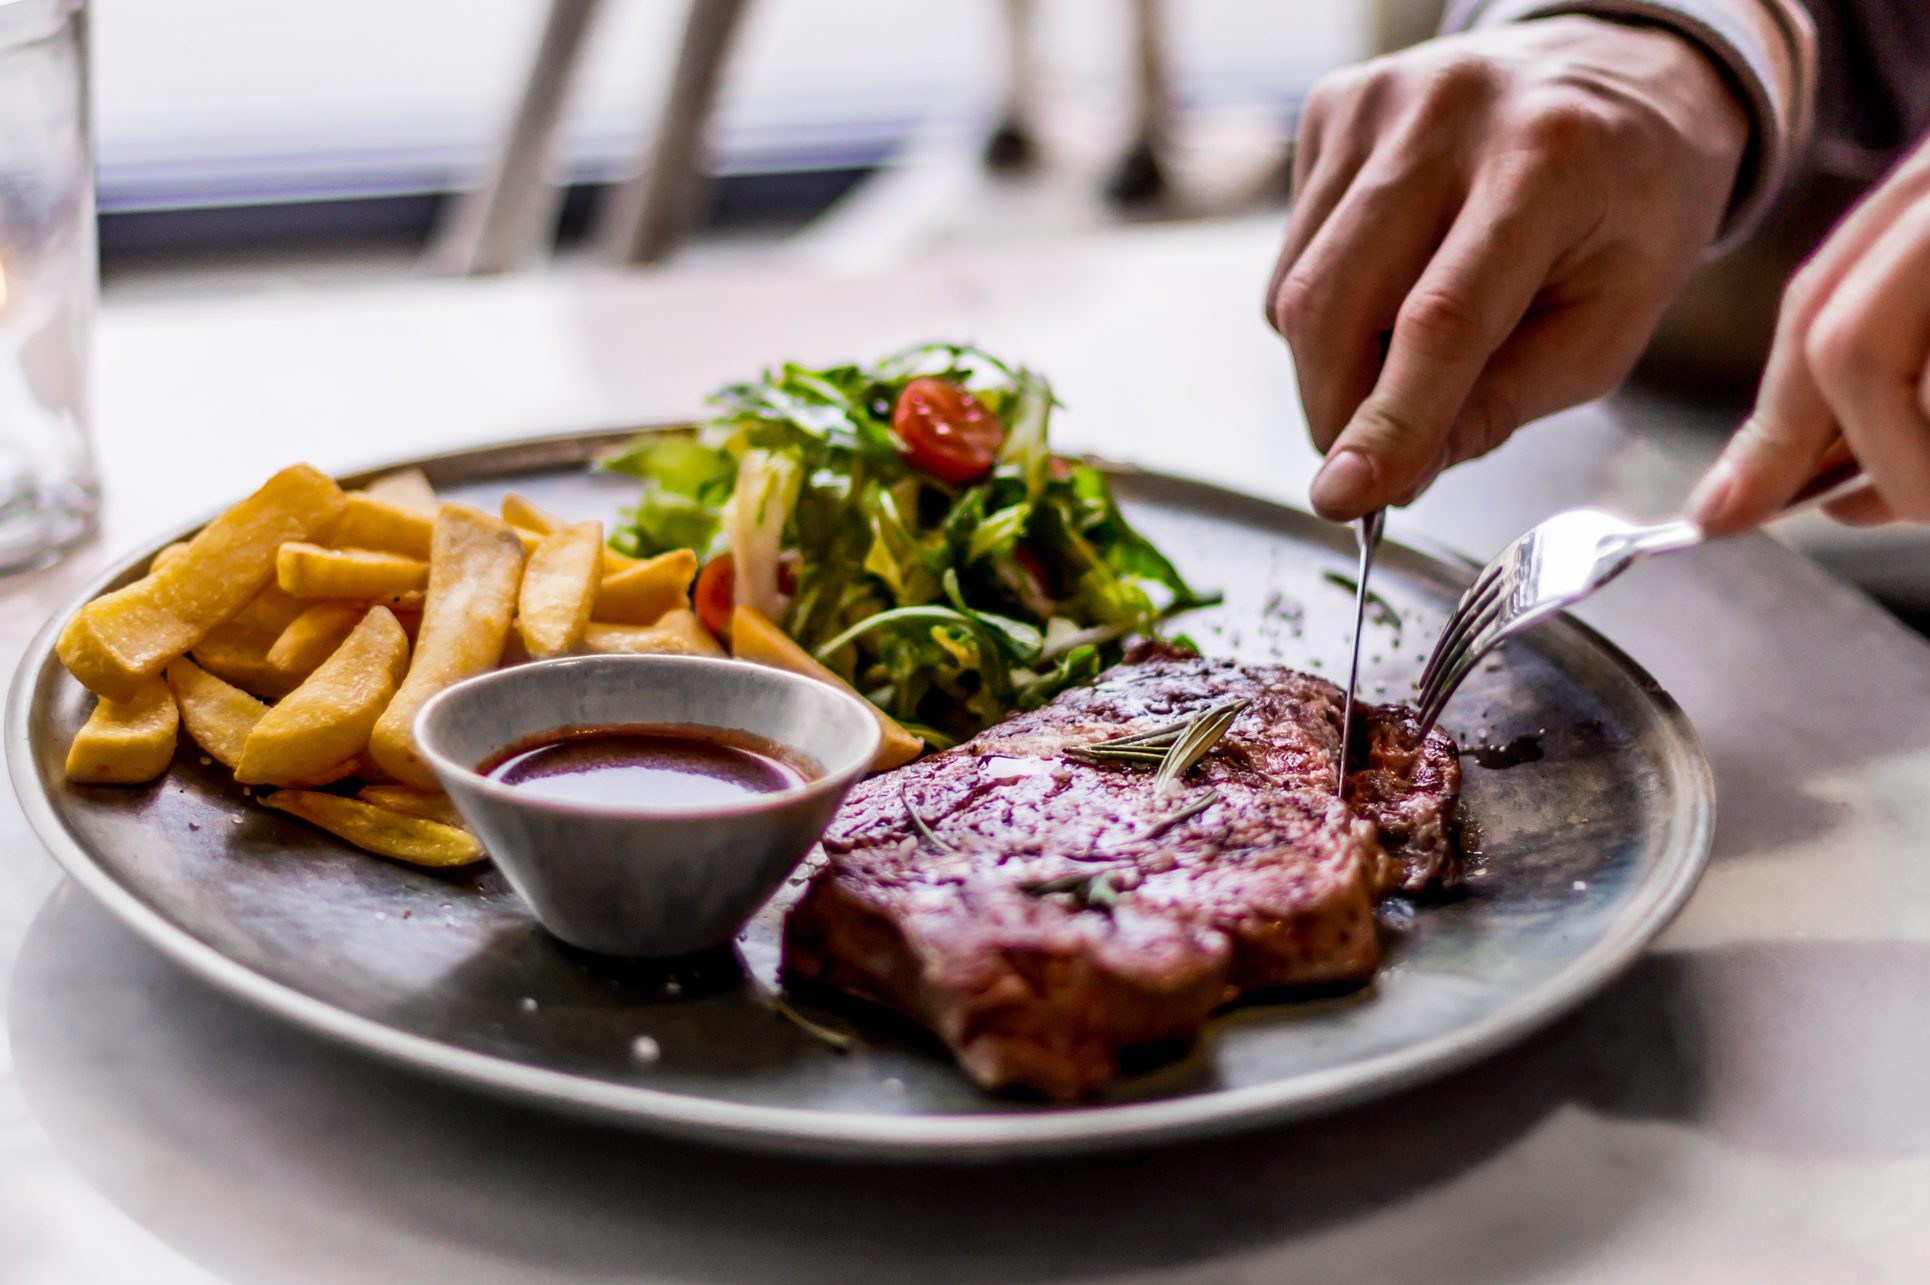 Close-Up Of Hands Cutting Into Steak Served On Plate With Fries